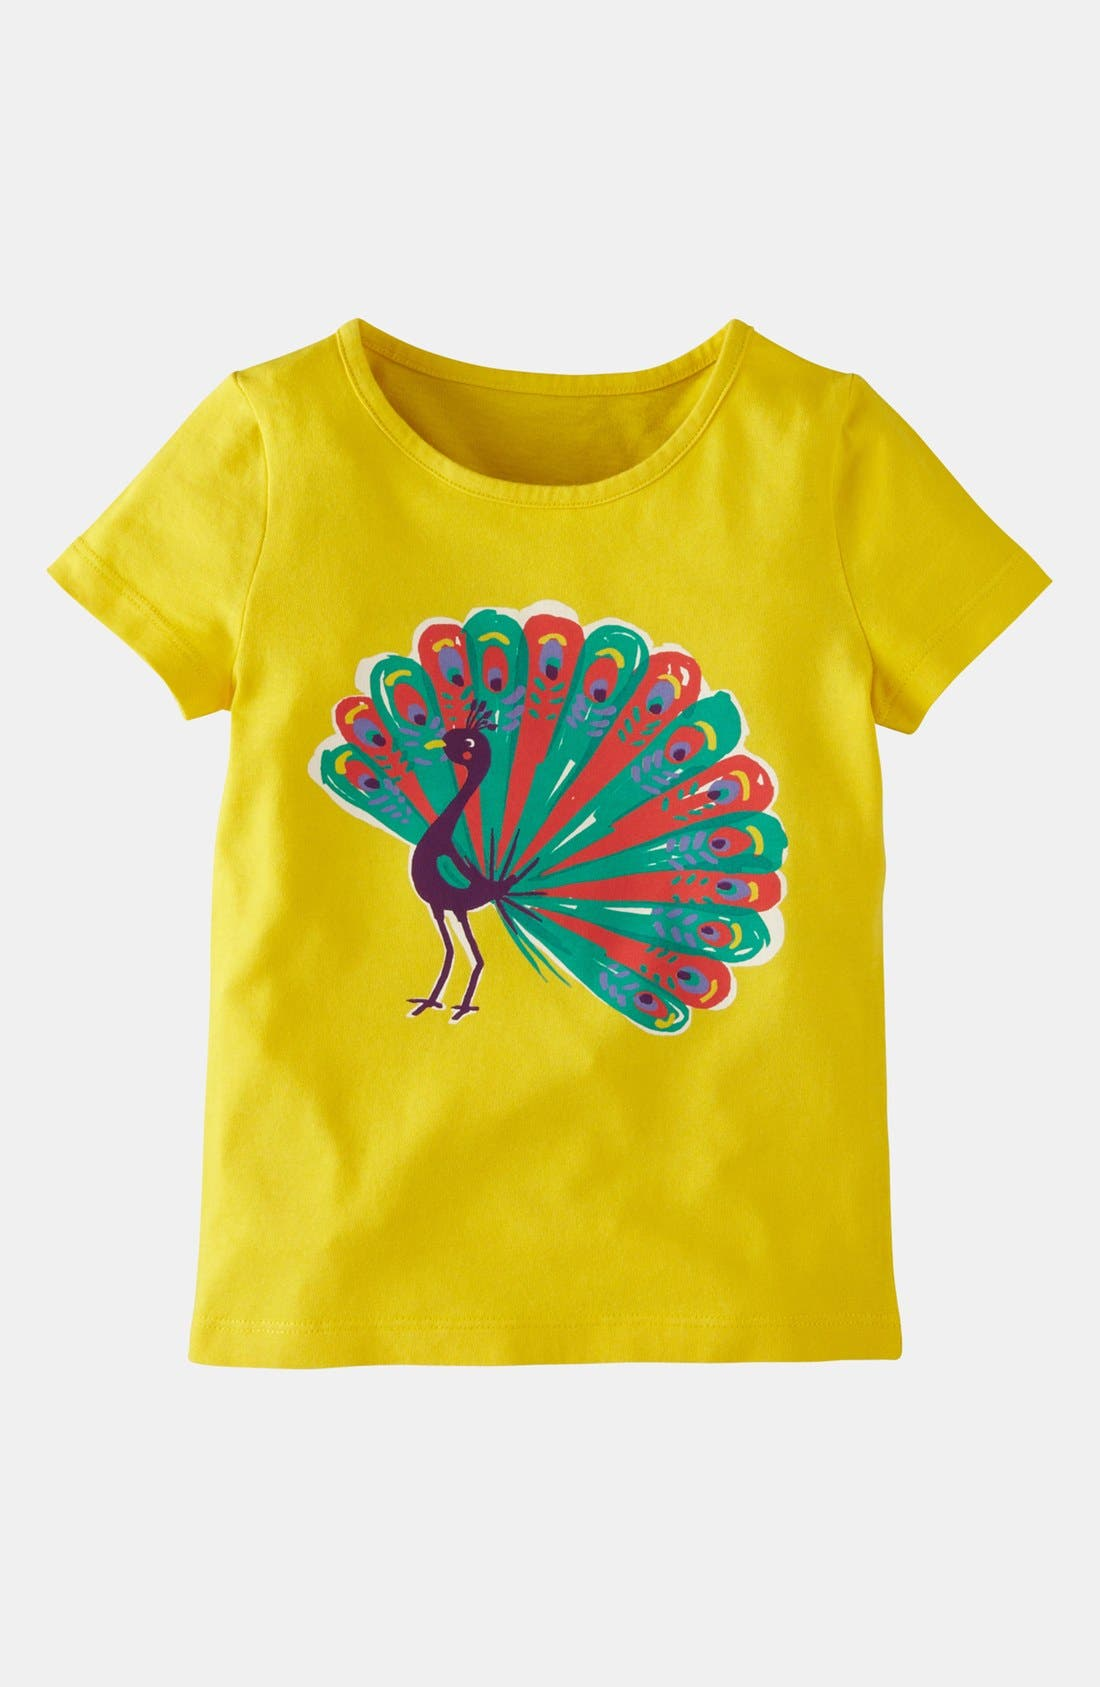 Alternate Image 1 Selected - Mini Boden 'Colorful Carnival' Tee (Toddler)